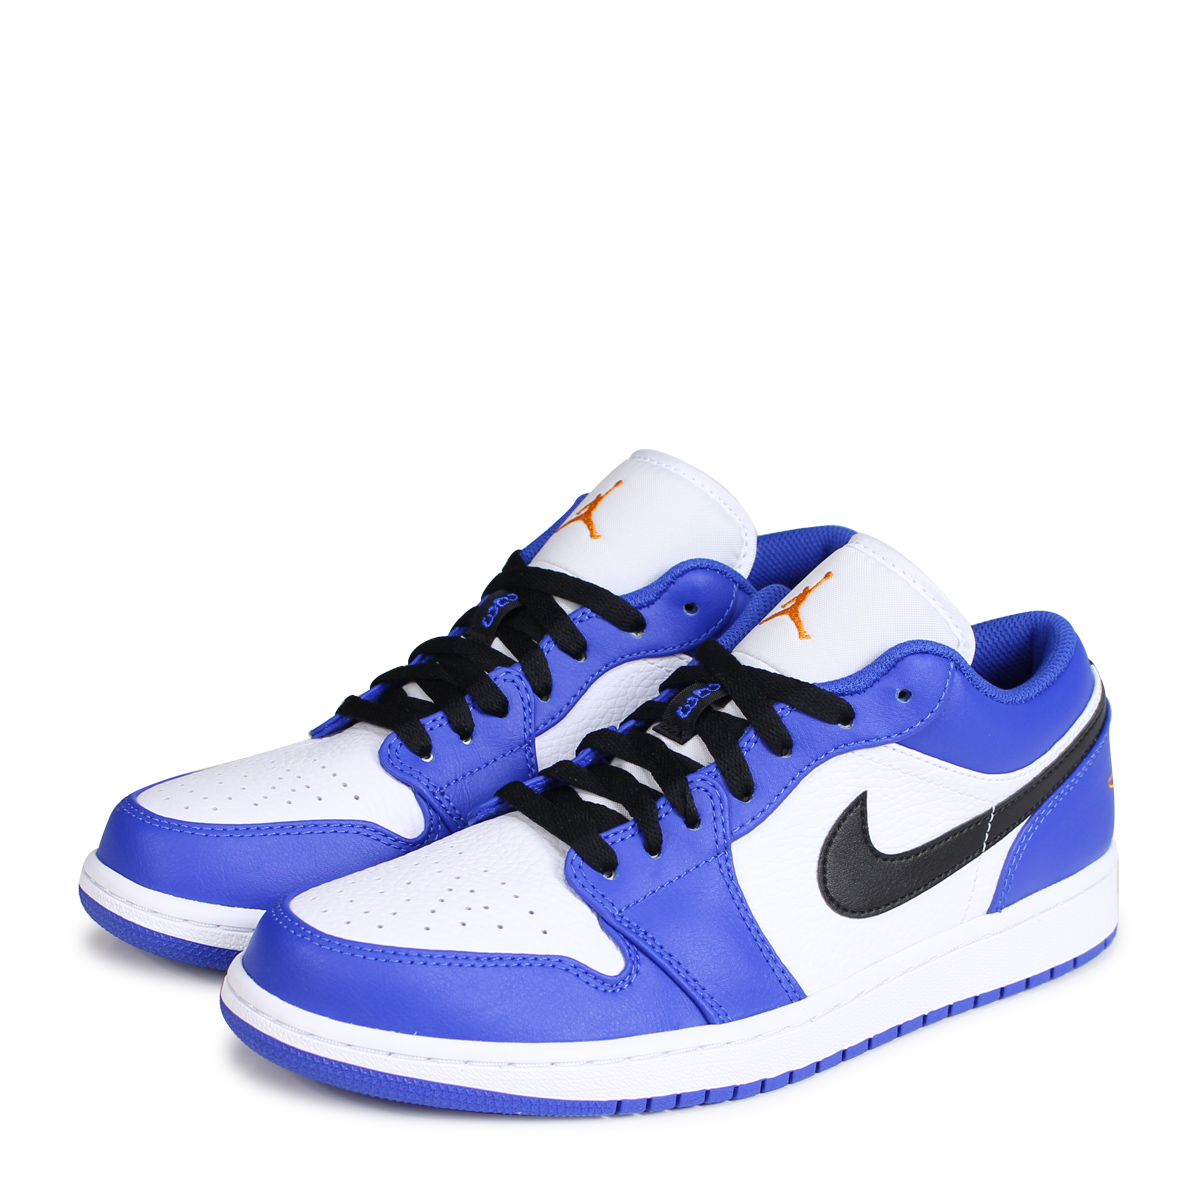 ee9bc09ea9846 ALLSPORTS  NIKE AIR JORDAN 1 LOW Nike Air Jordan 1 sneakers men ...